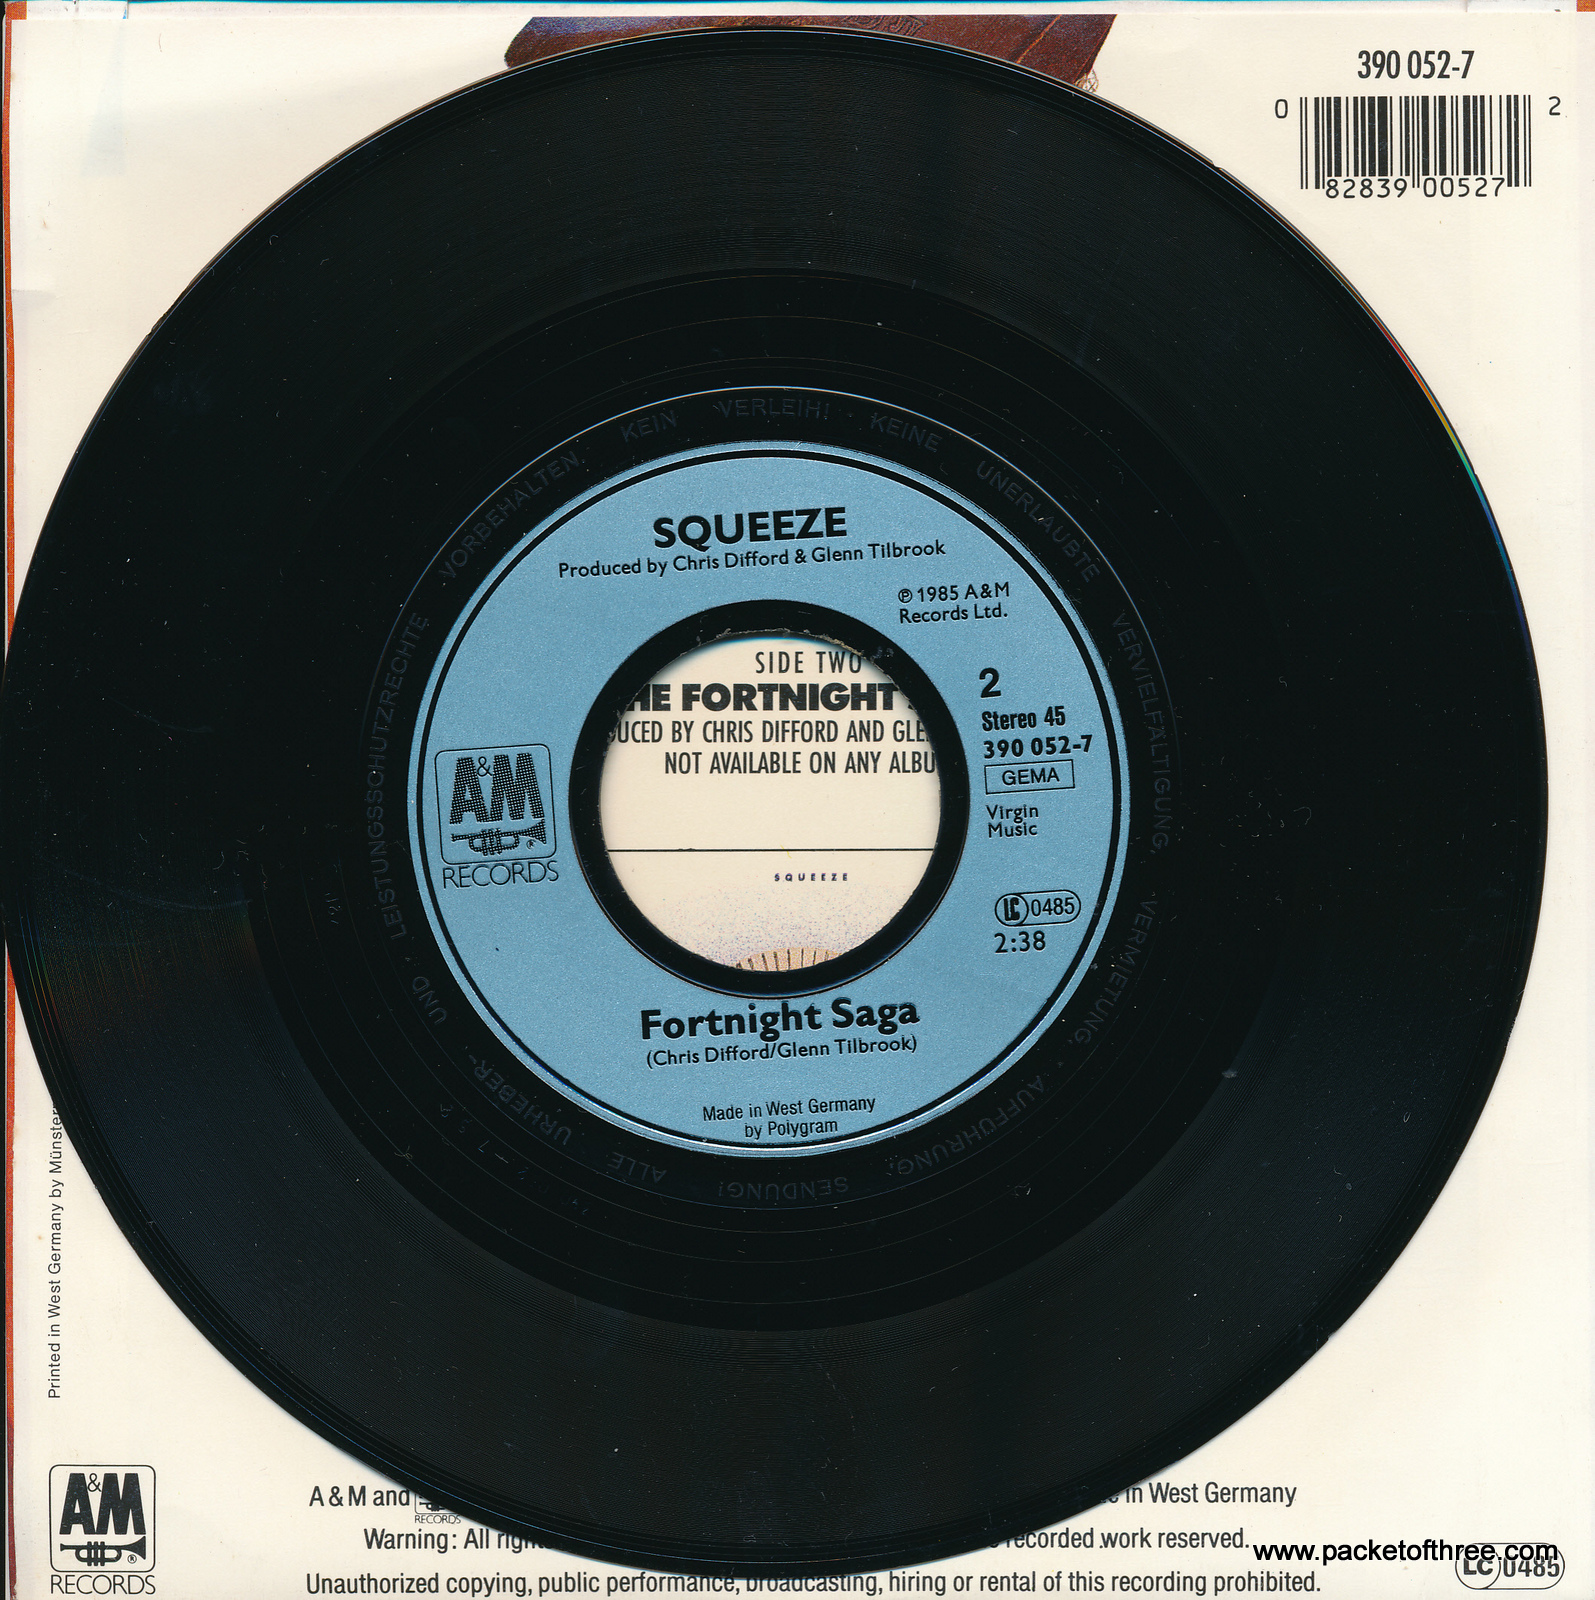 """Squeeze - By Your Side - Germany - 7"""" - picture sleeve"""